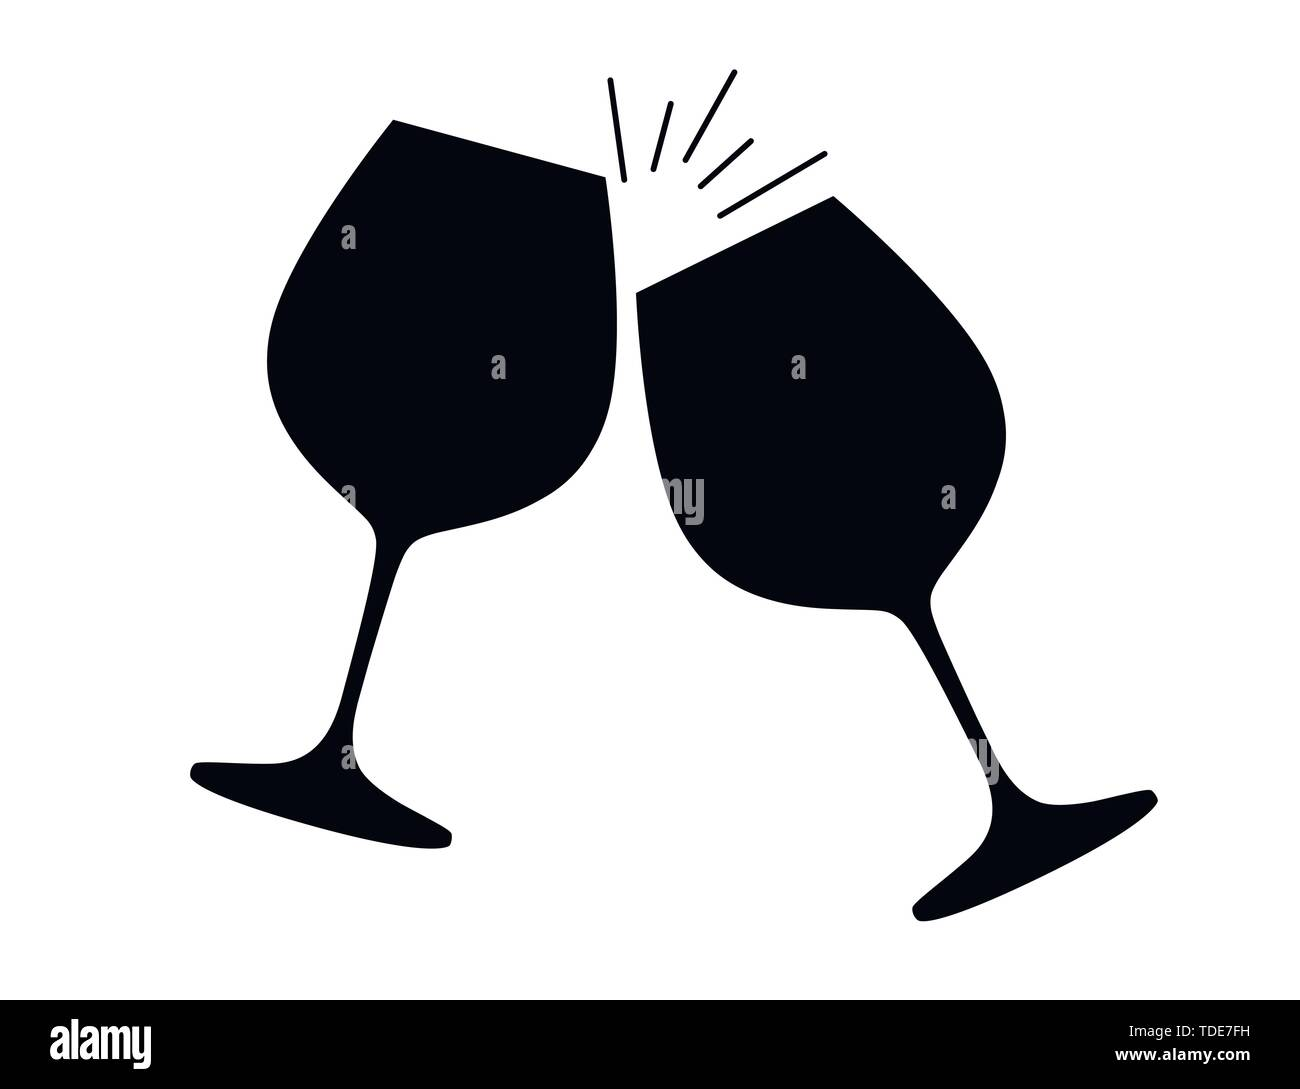 Black Silhouette Two Wine Glasses With Red Wine Cheers Flat Vector Illustration On White Background Stock Vector Image Art Alamy